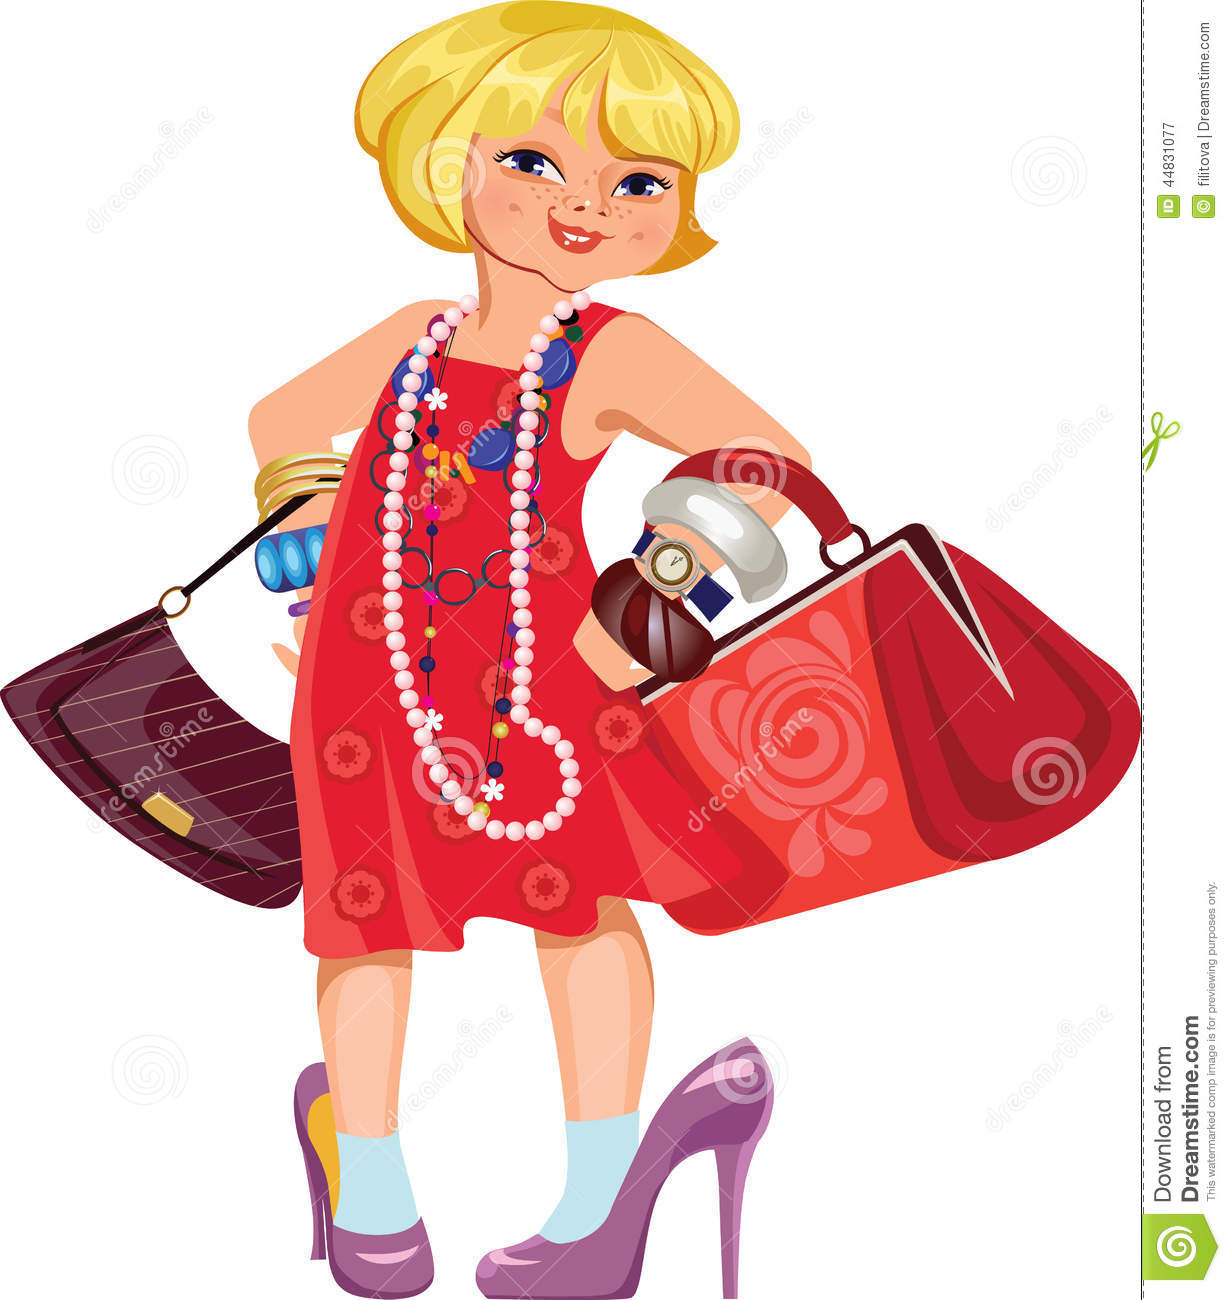 Little fashionista stock vector. Illustration of adorable ...